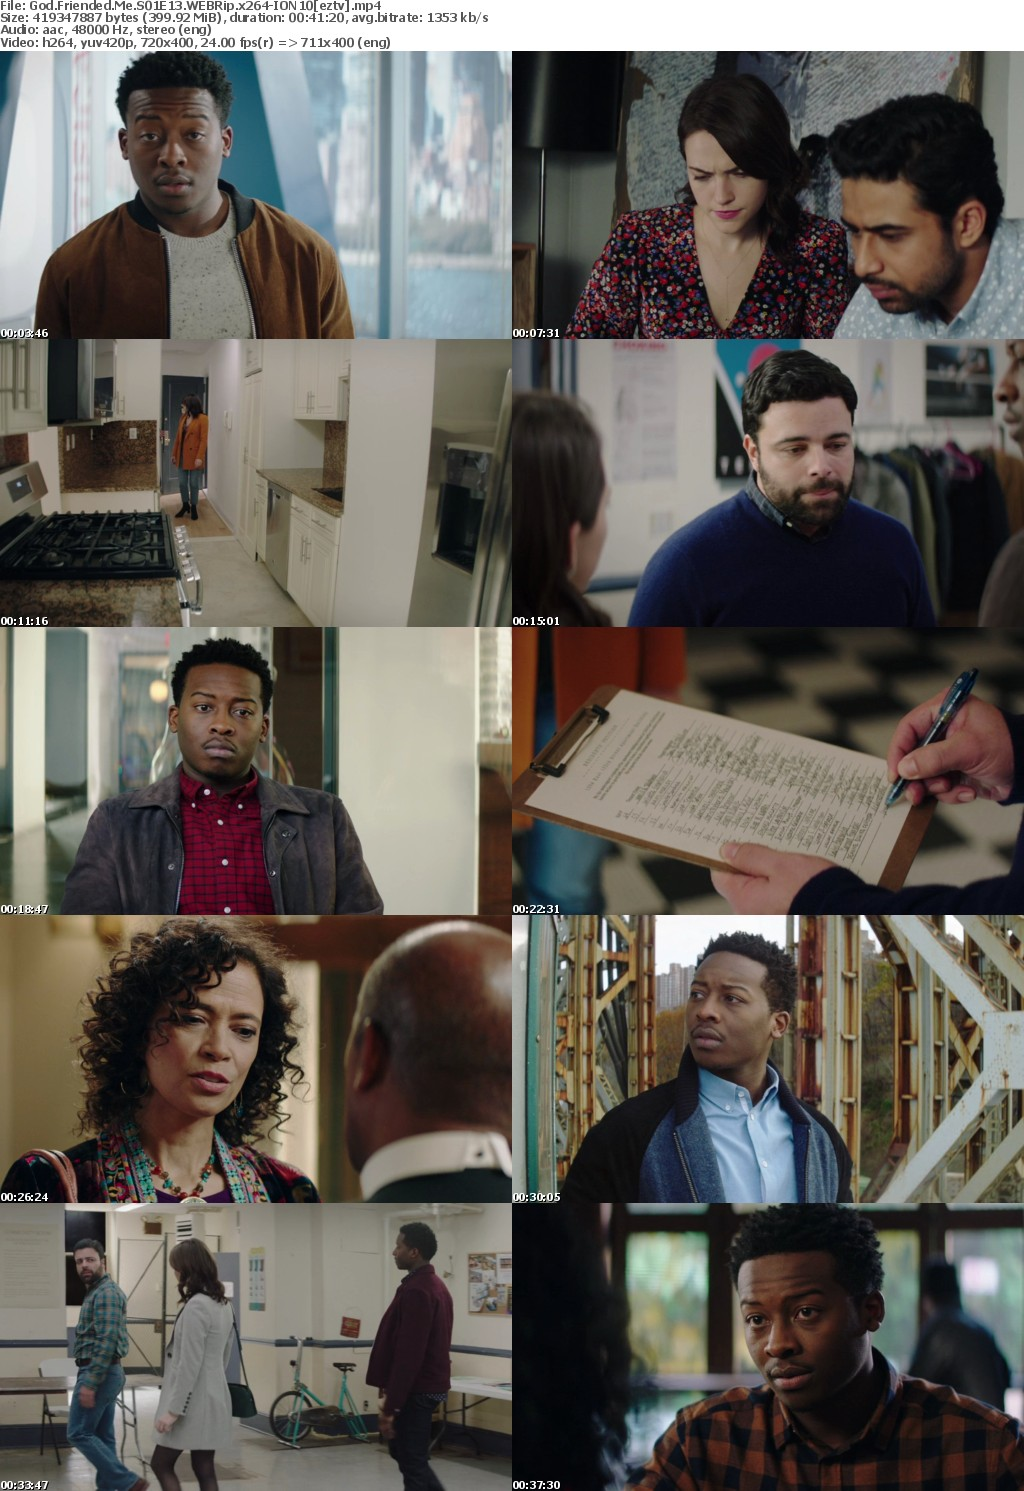 God Friended Me S01E13 WEBRip x264-ION10